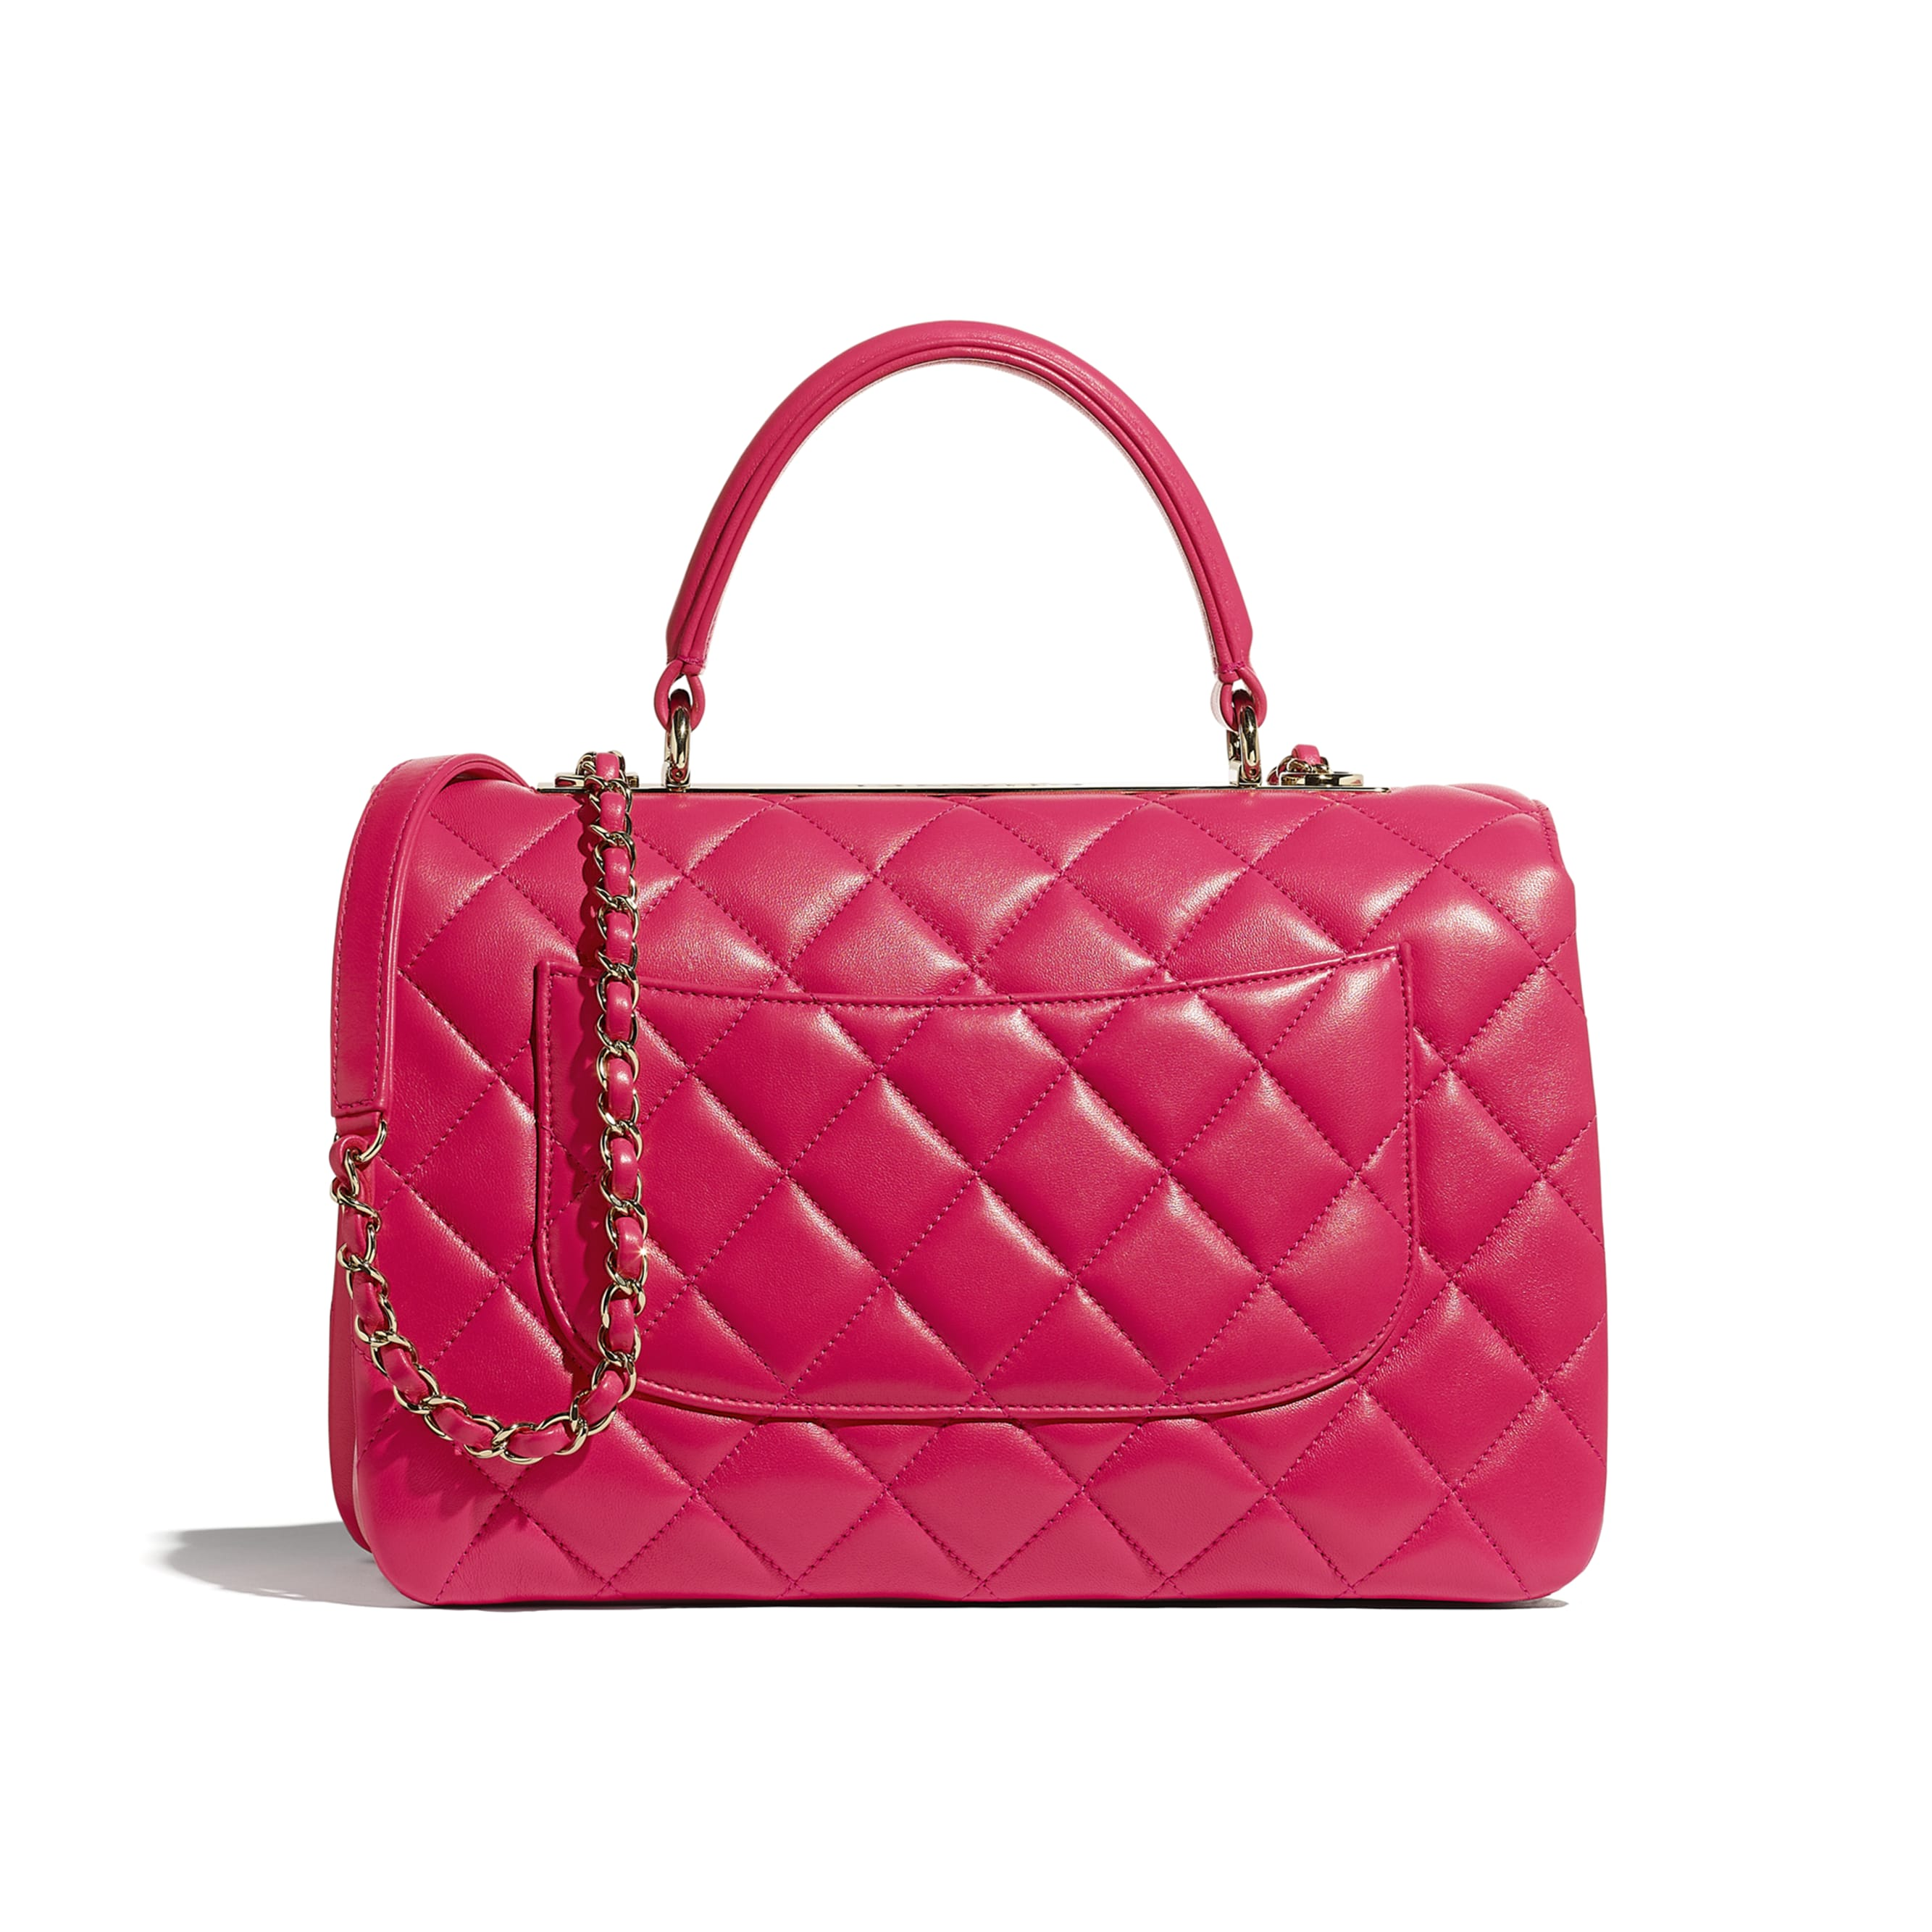 Flap Bag With Top Handle - Pink - Lambskin - CHANEL - Alternative view - see standard sized version